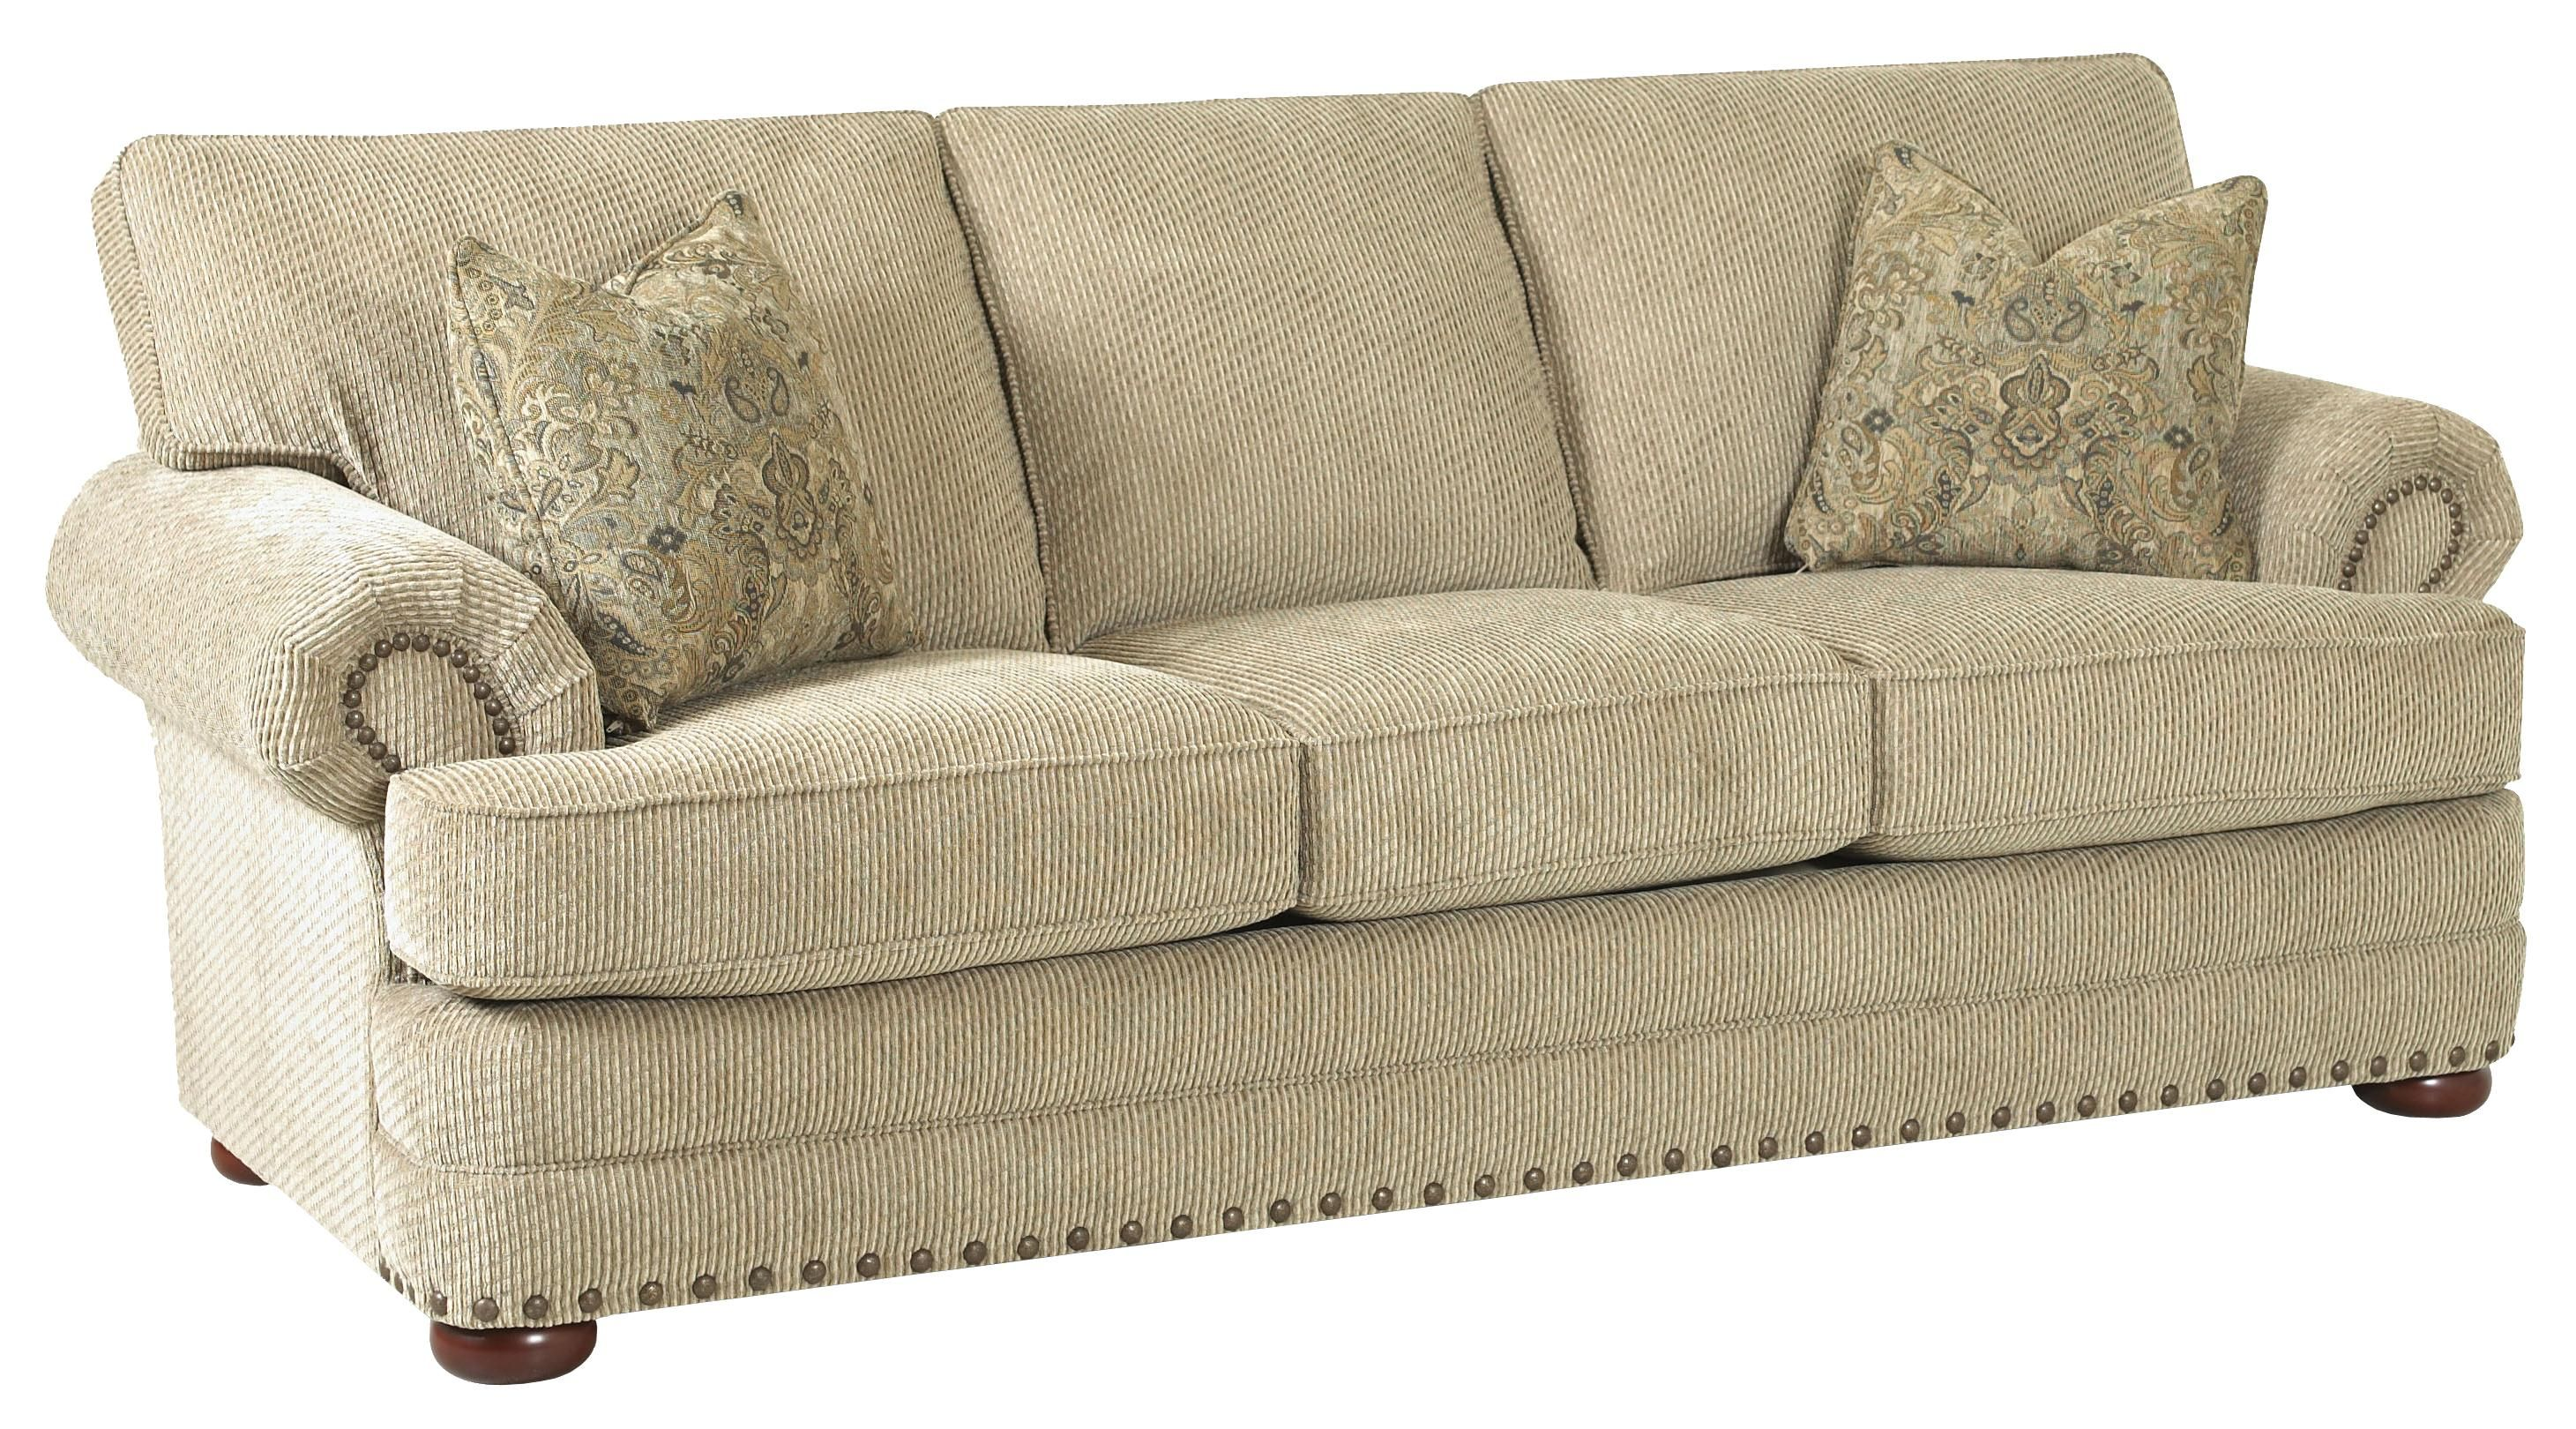 Simple Elegance Cliffside Traditional Styled Sofa With Nail Head Accent  Trim   Gardiners Furniture   Sofa